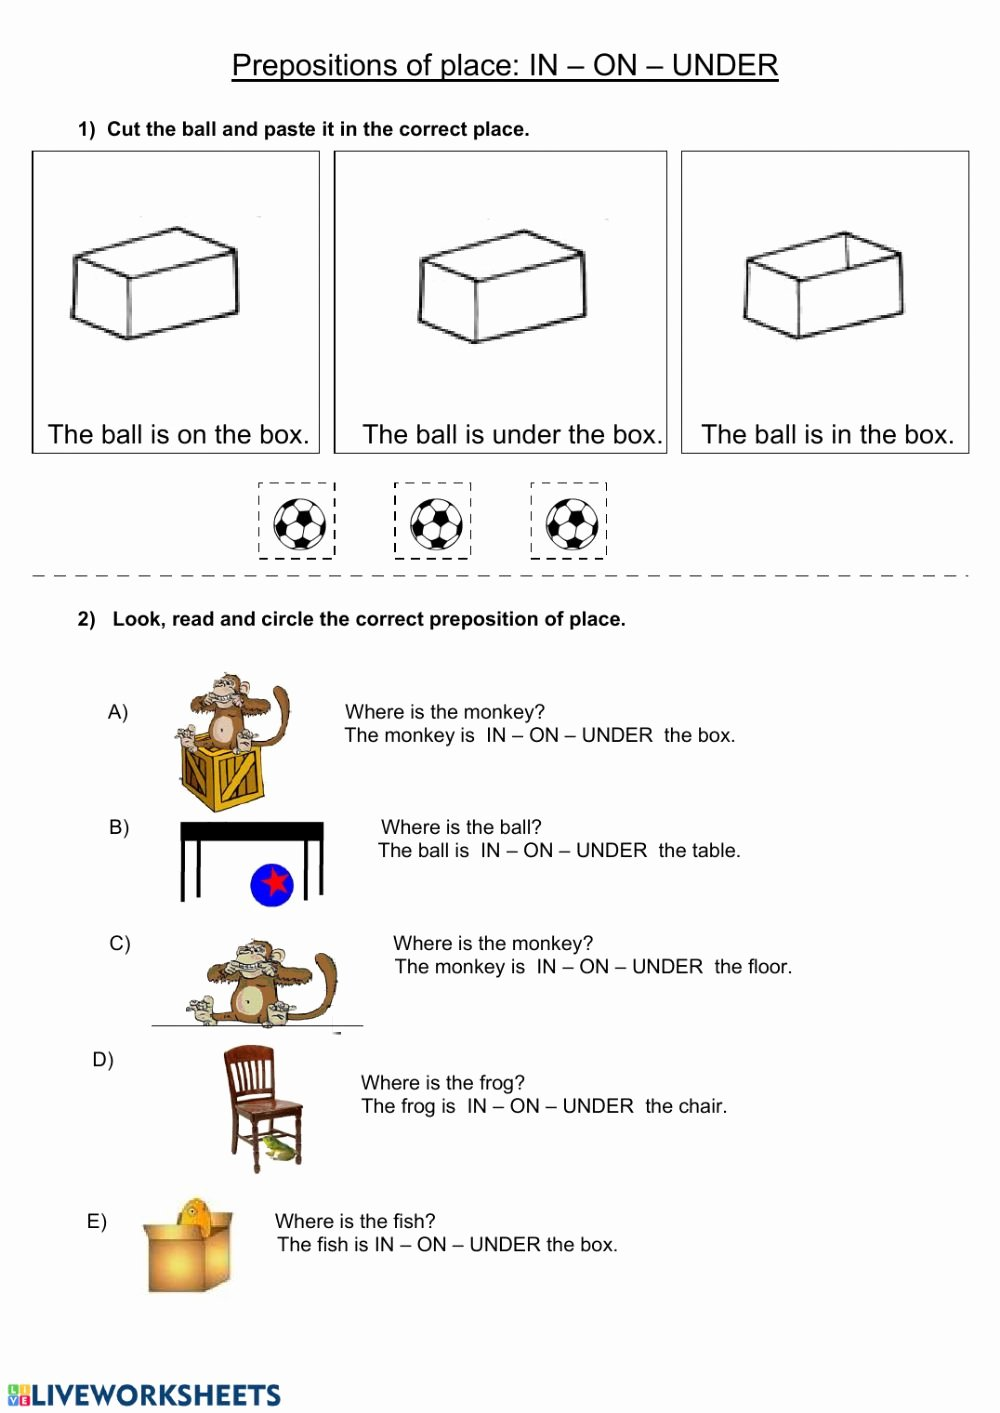 Preposition Worksheets for Grade 1 Best Of In On Under Interactive Worksheet